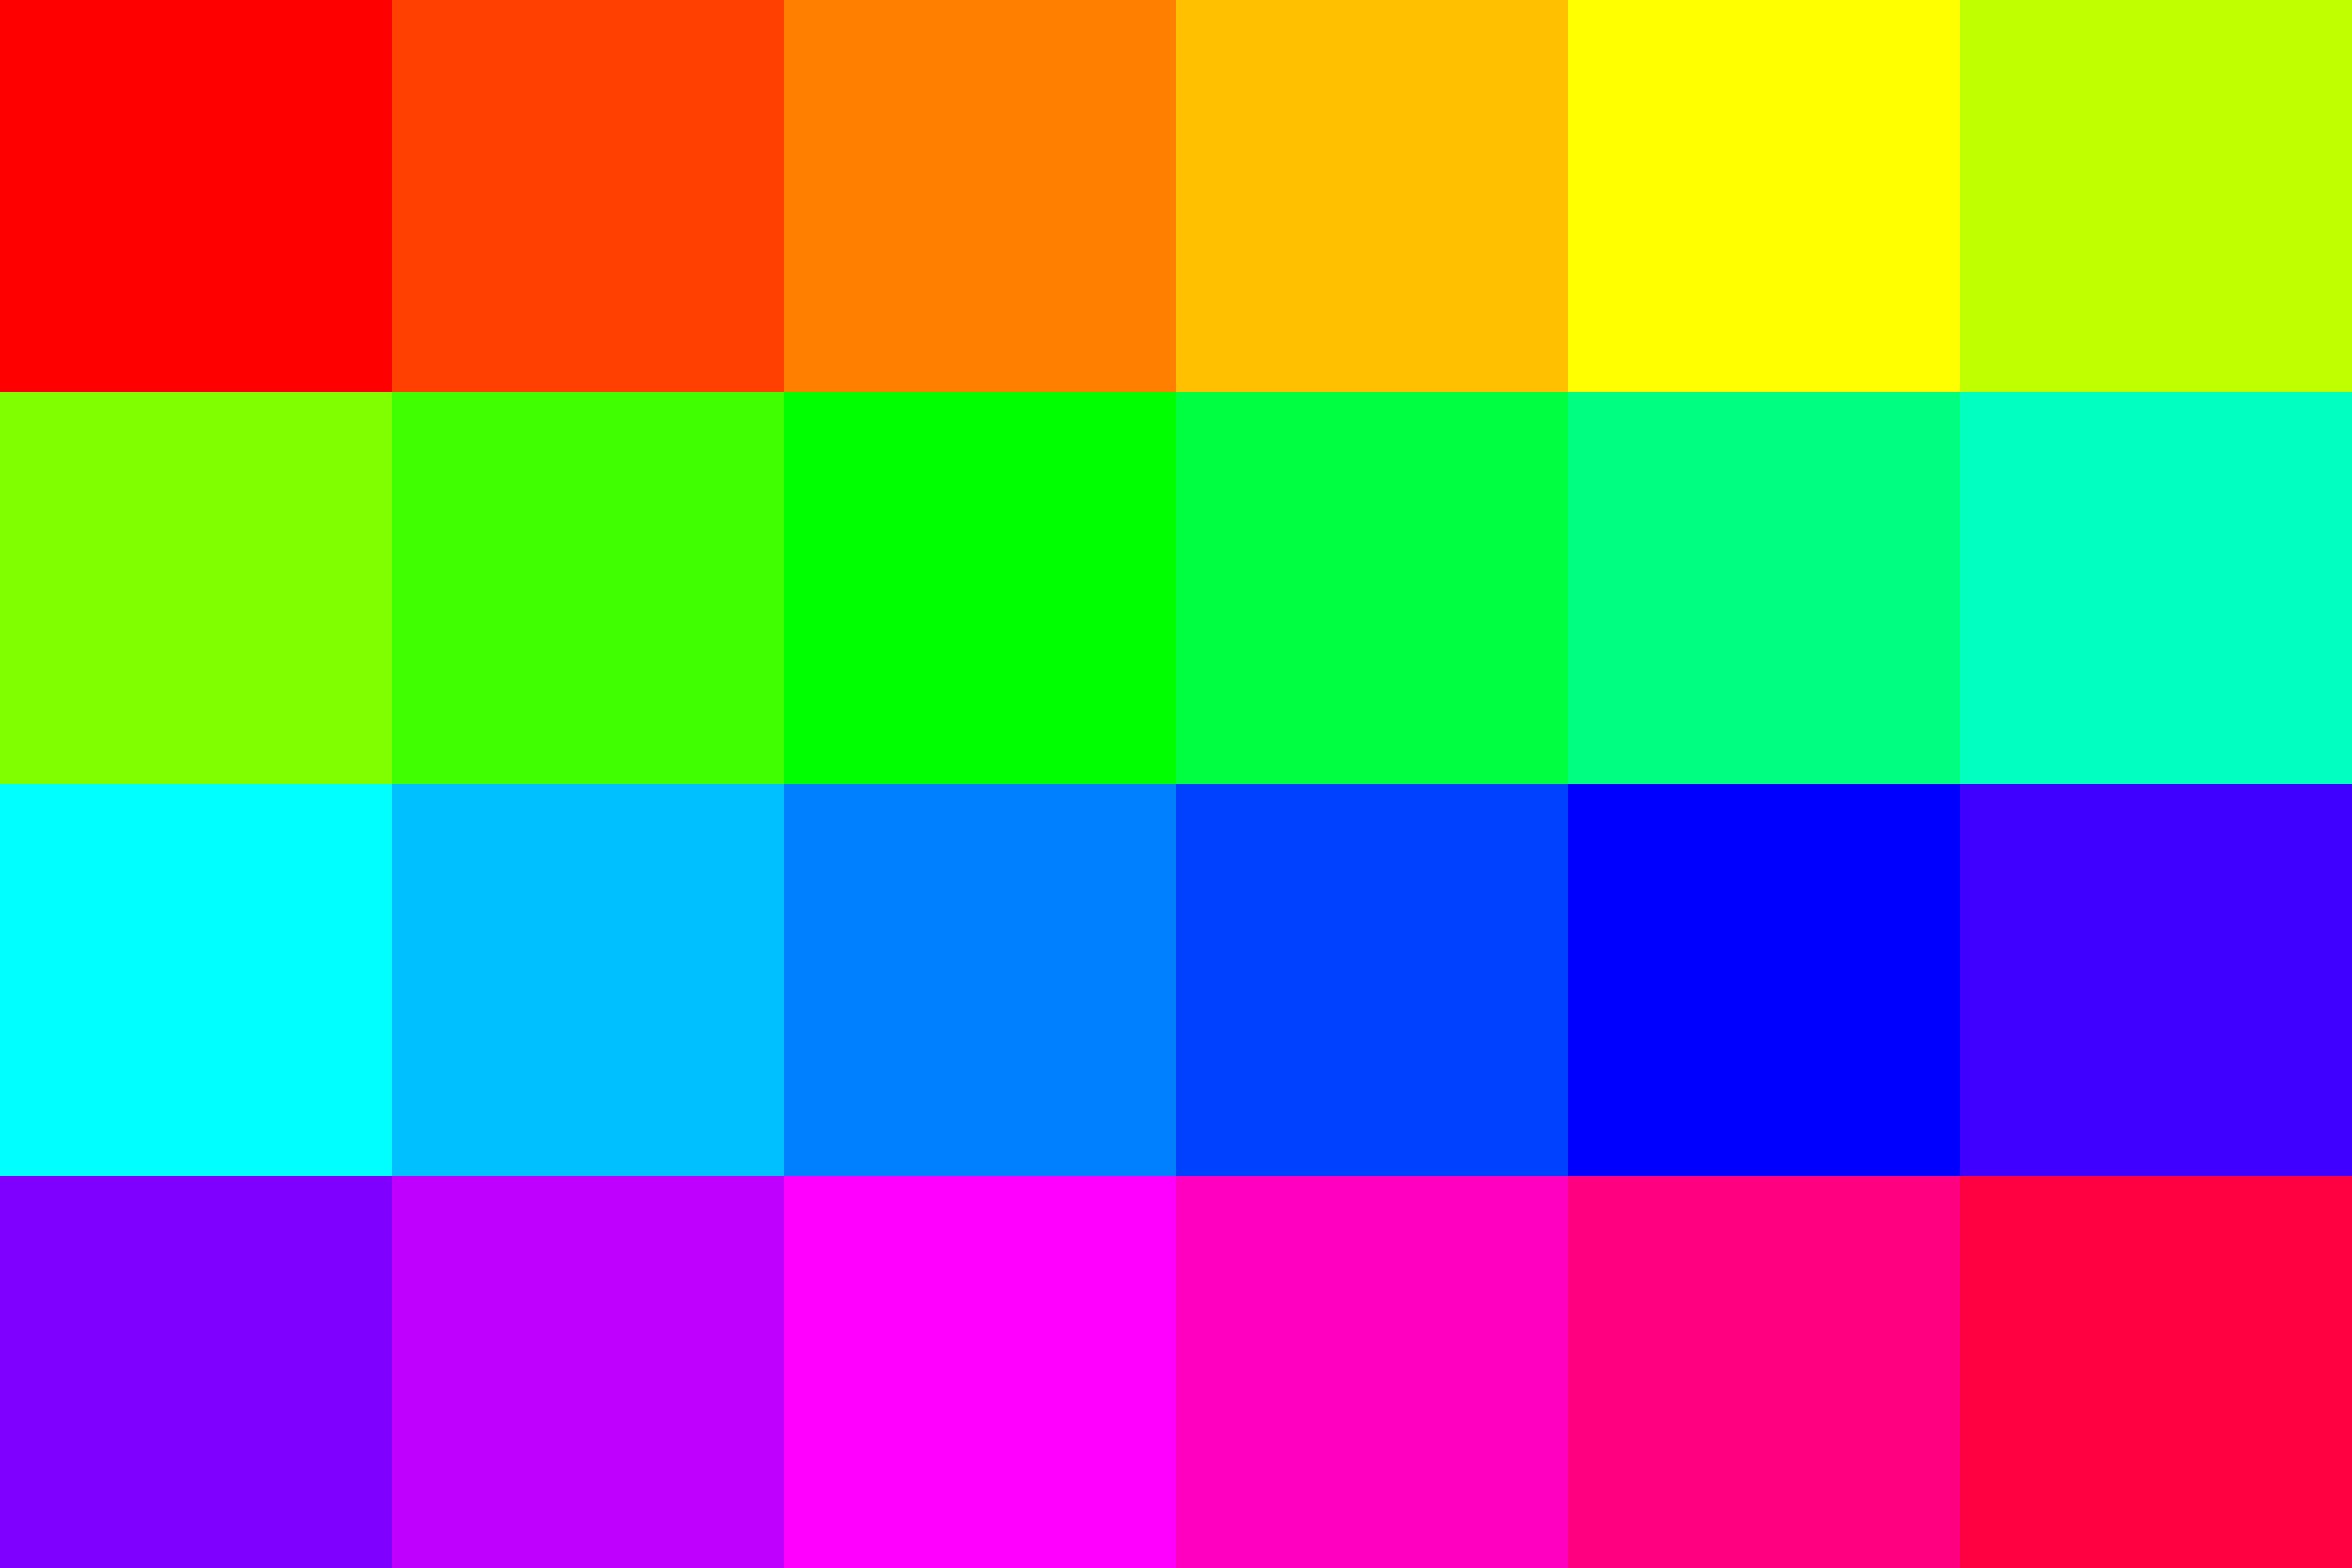 24 color palette by 10binary